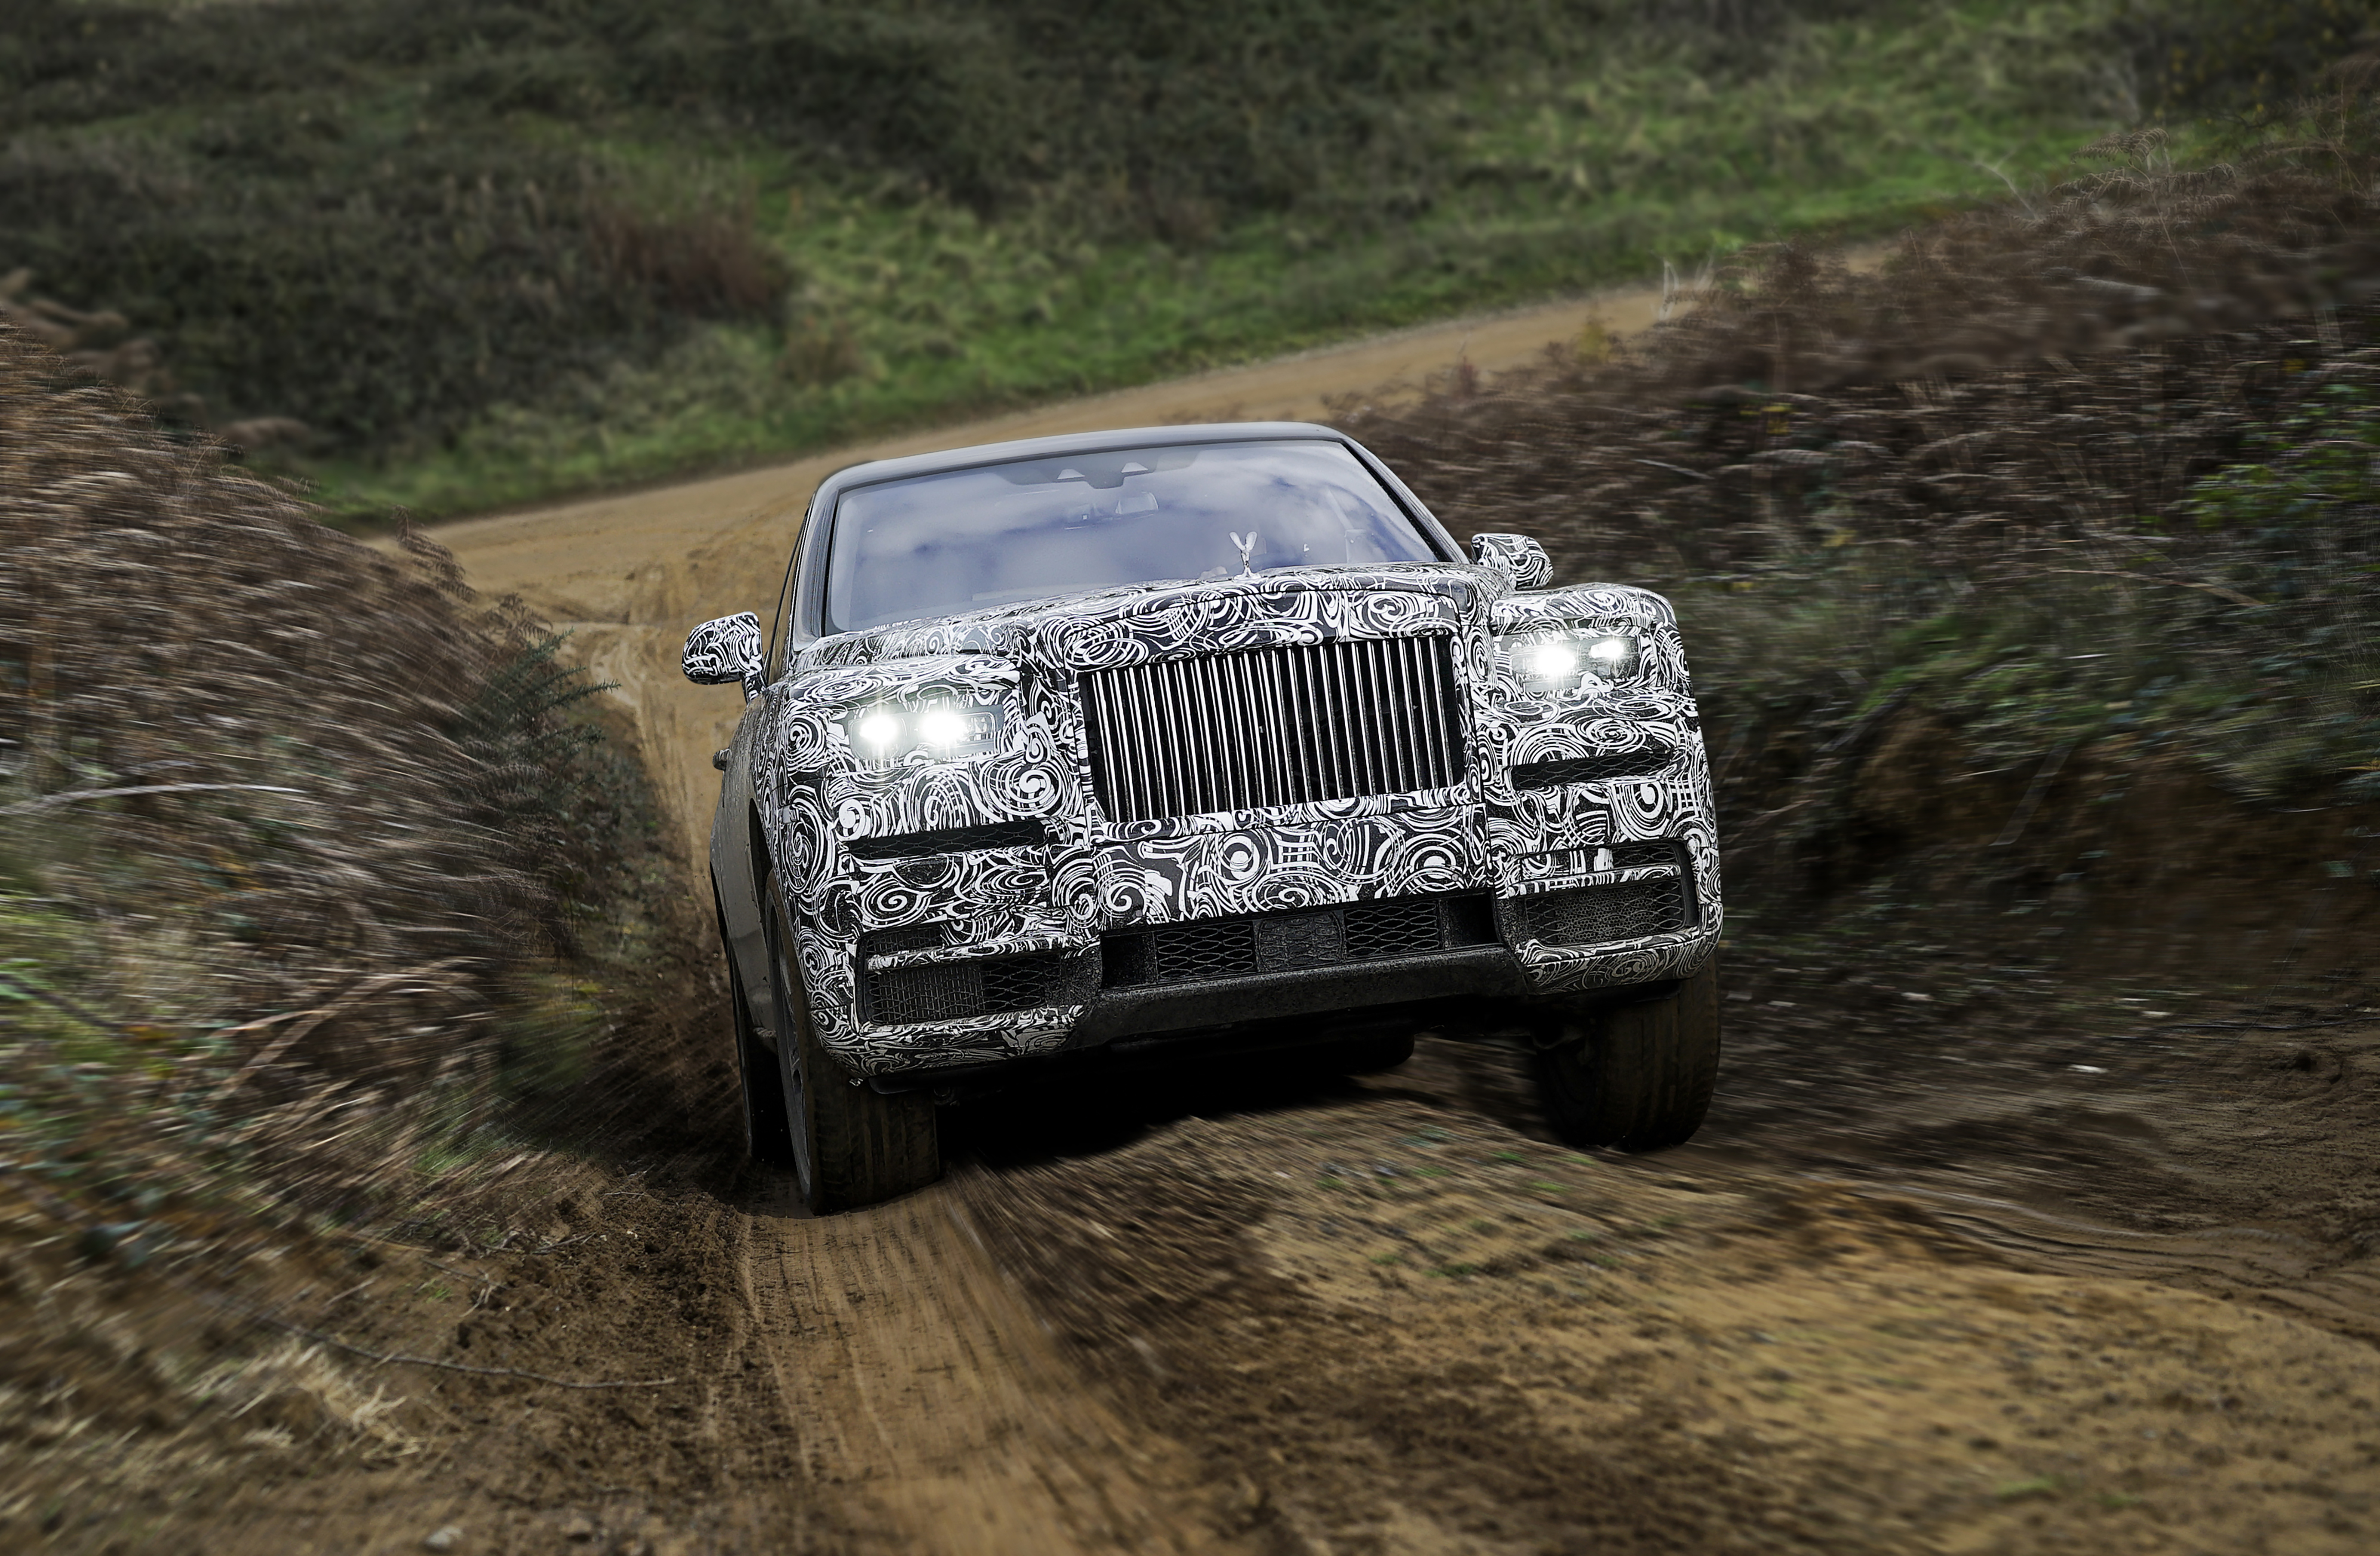 NAME OF NEW HIGH BODIED VEHICLE TO BE ROLLS-ROYCE CULLINAN